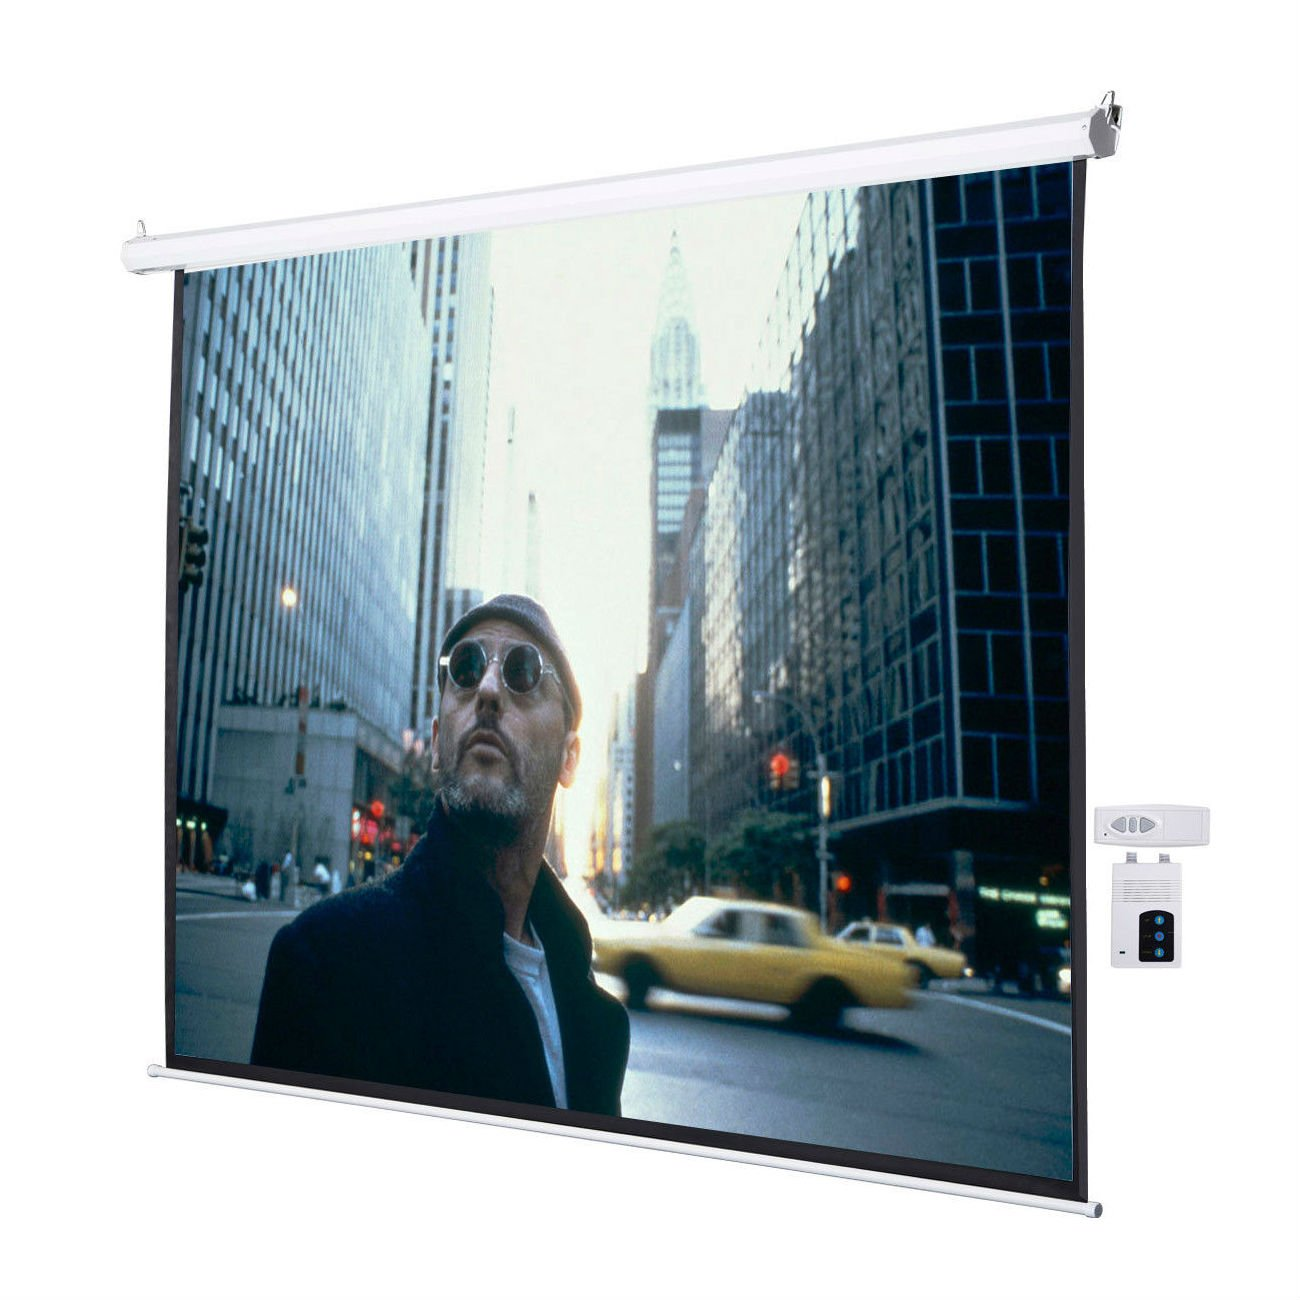 120'' 4:3 Electric Auto Projector Projection Screen 96''x72'' Remote Control Most Viewed